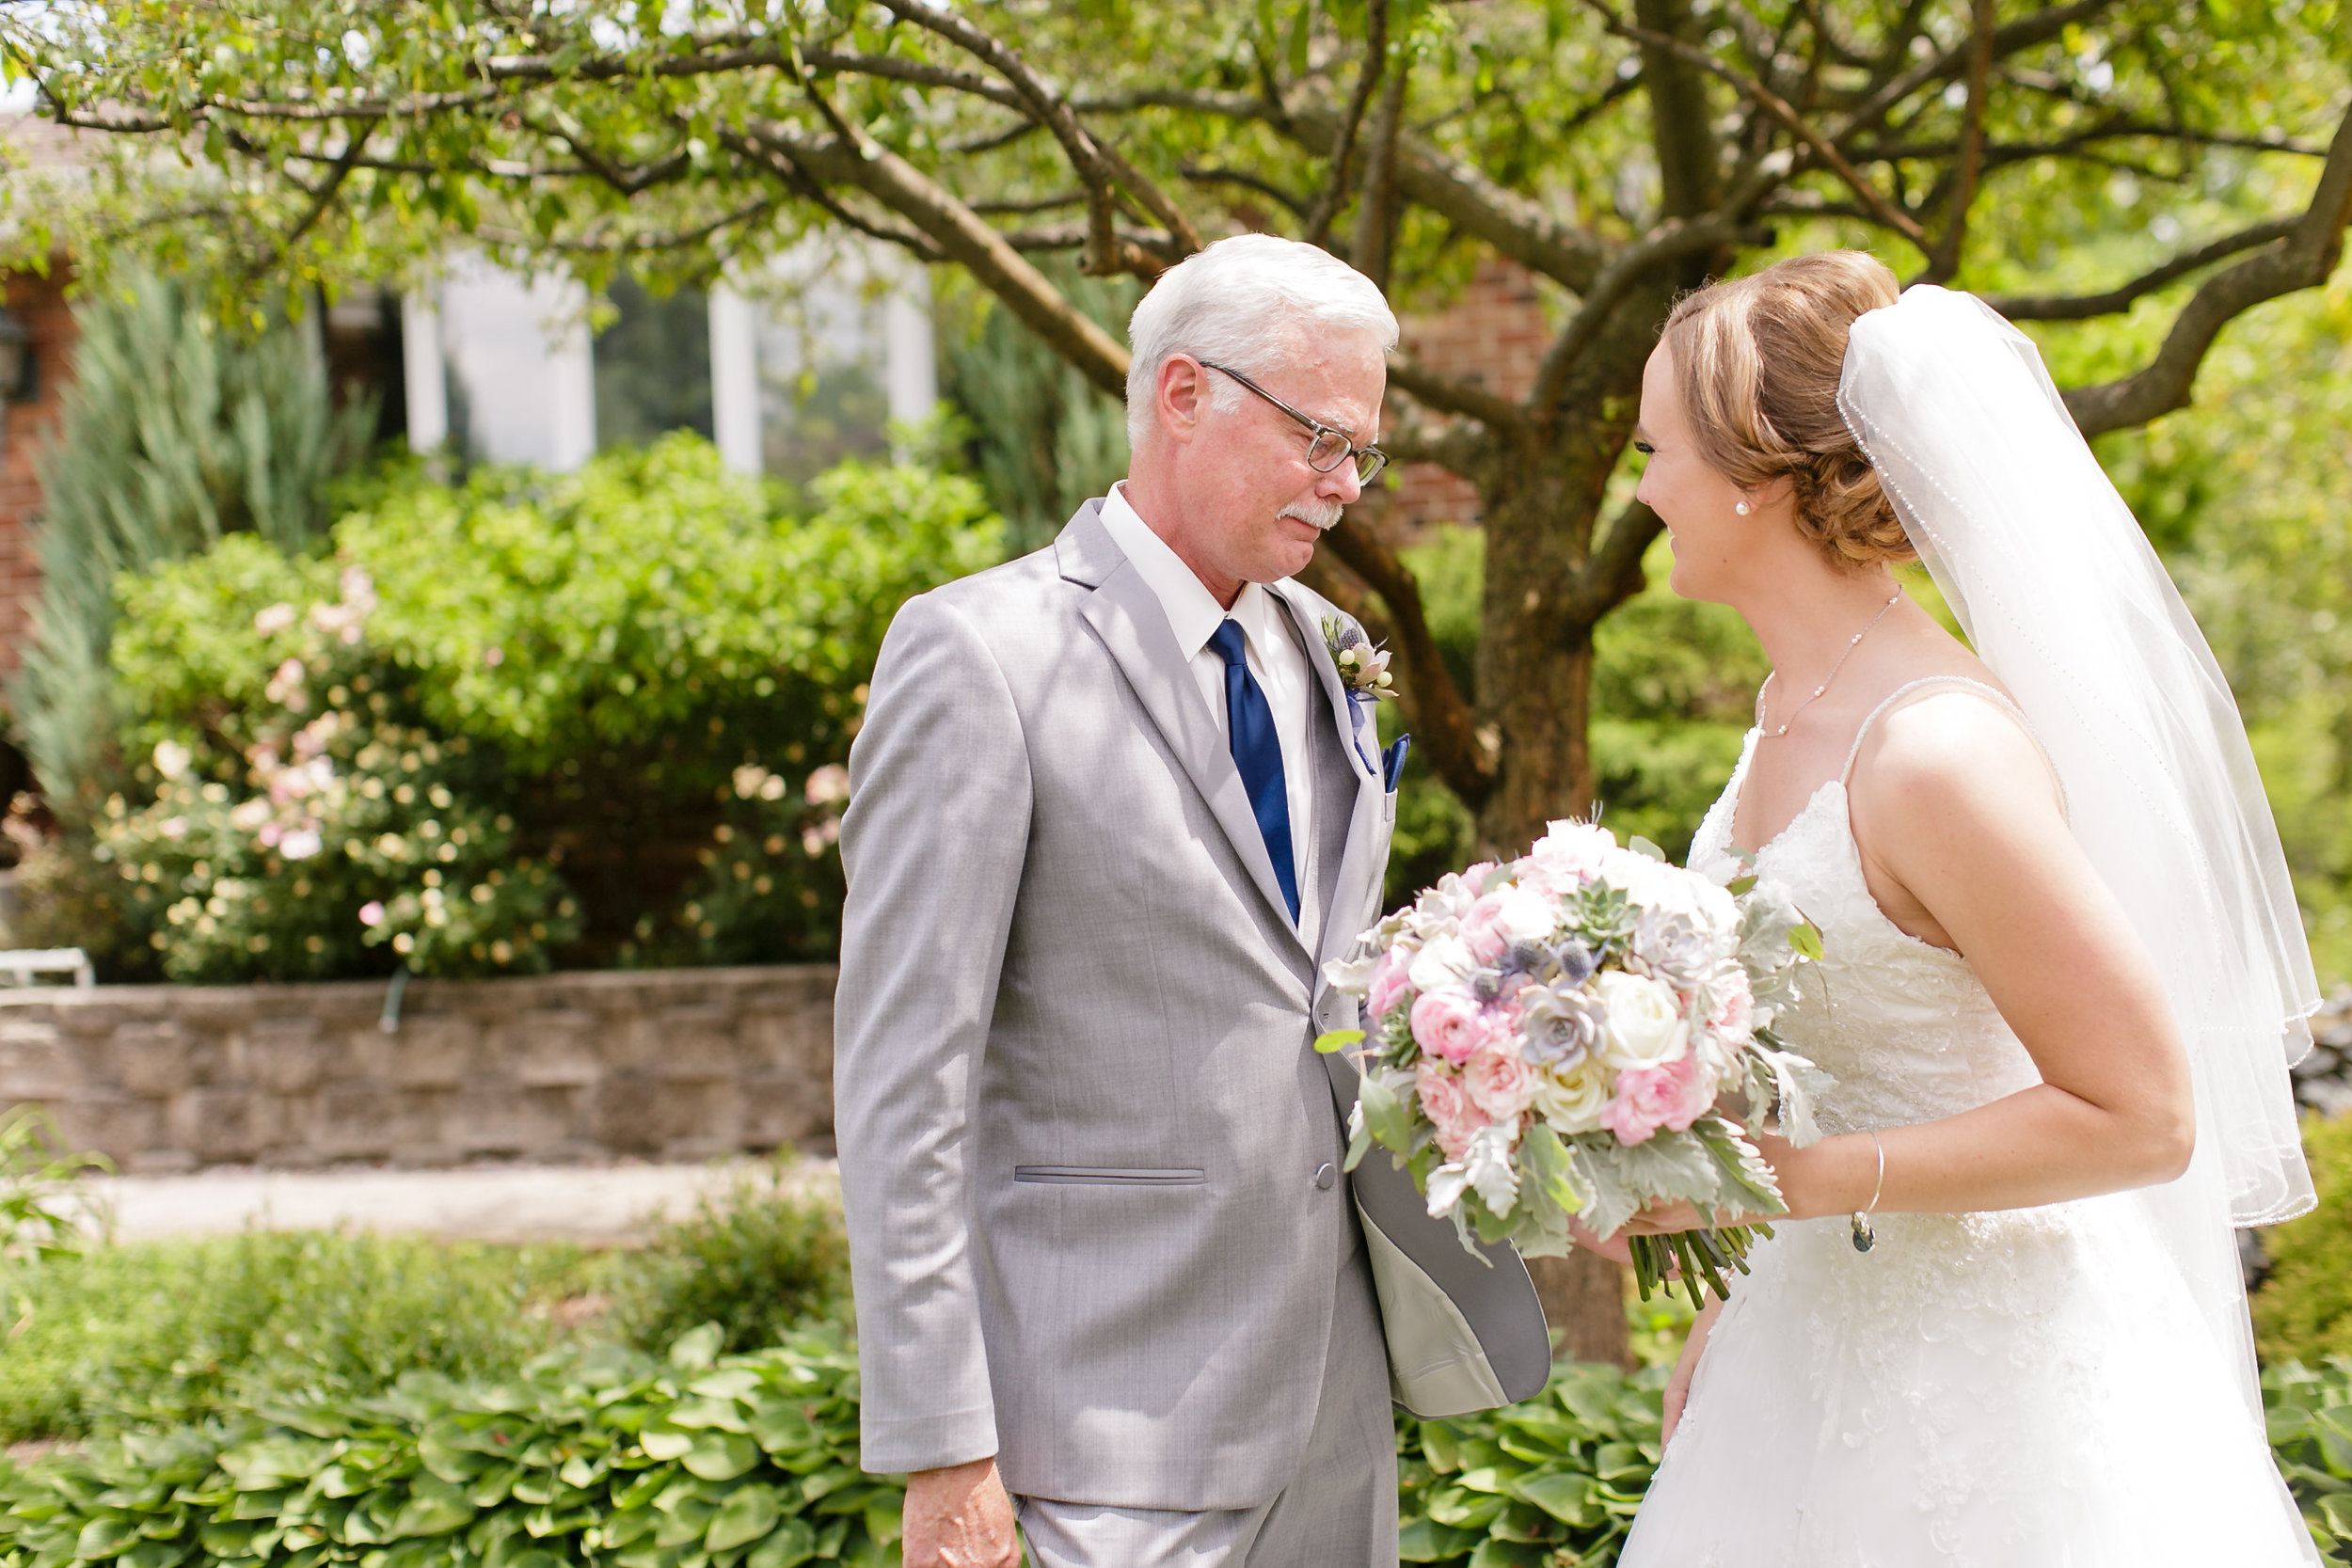 {Photo by: The Siegers Photo + Video}